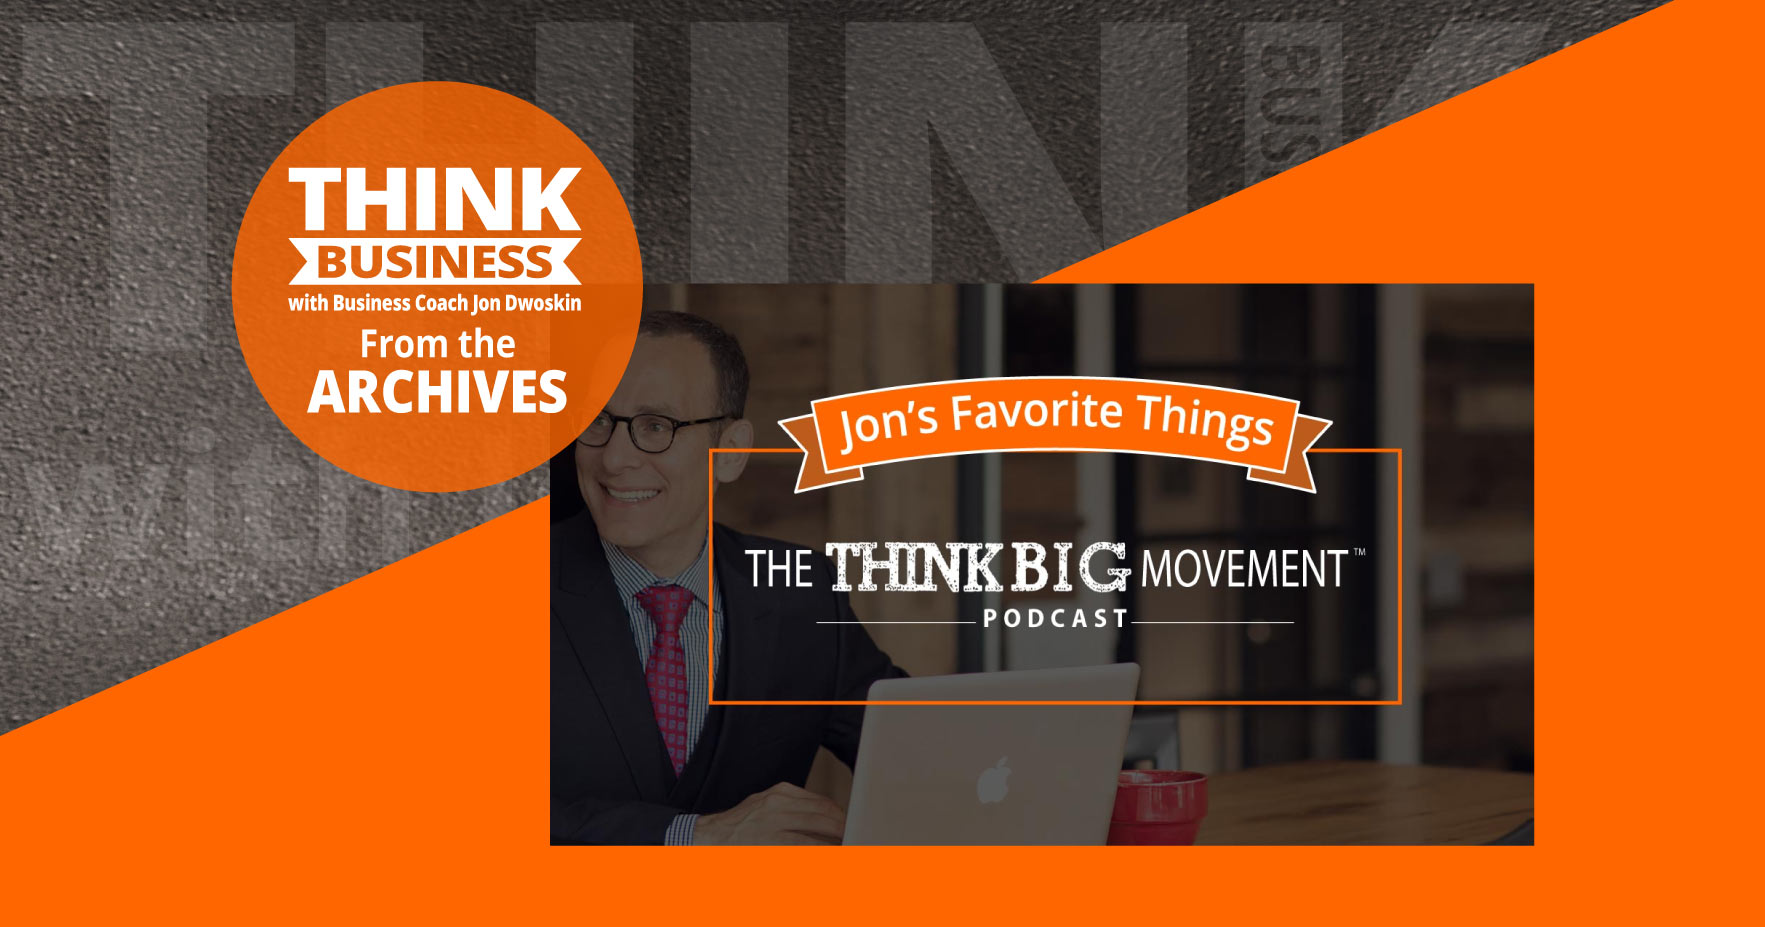 THINK Business Podcast: Jon's Favorite Things